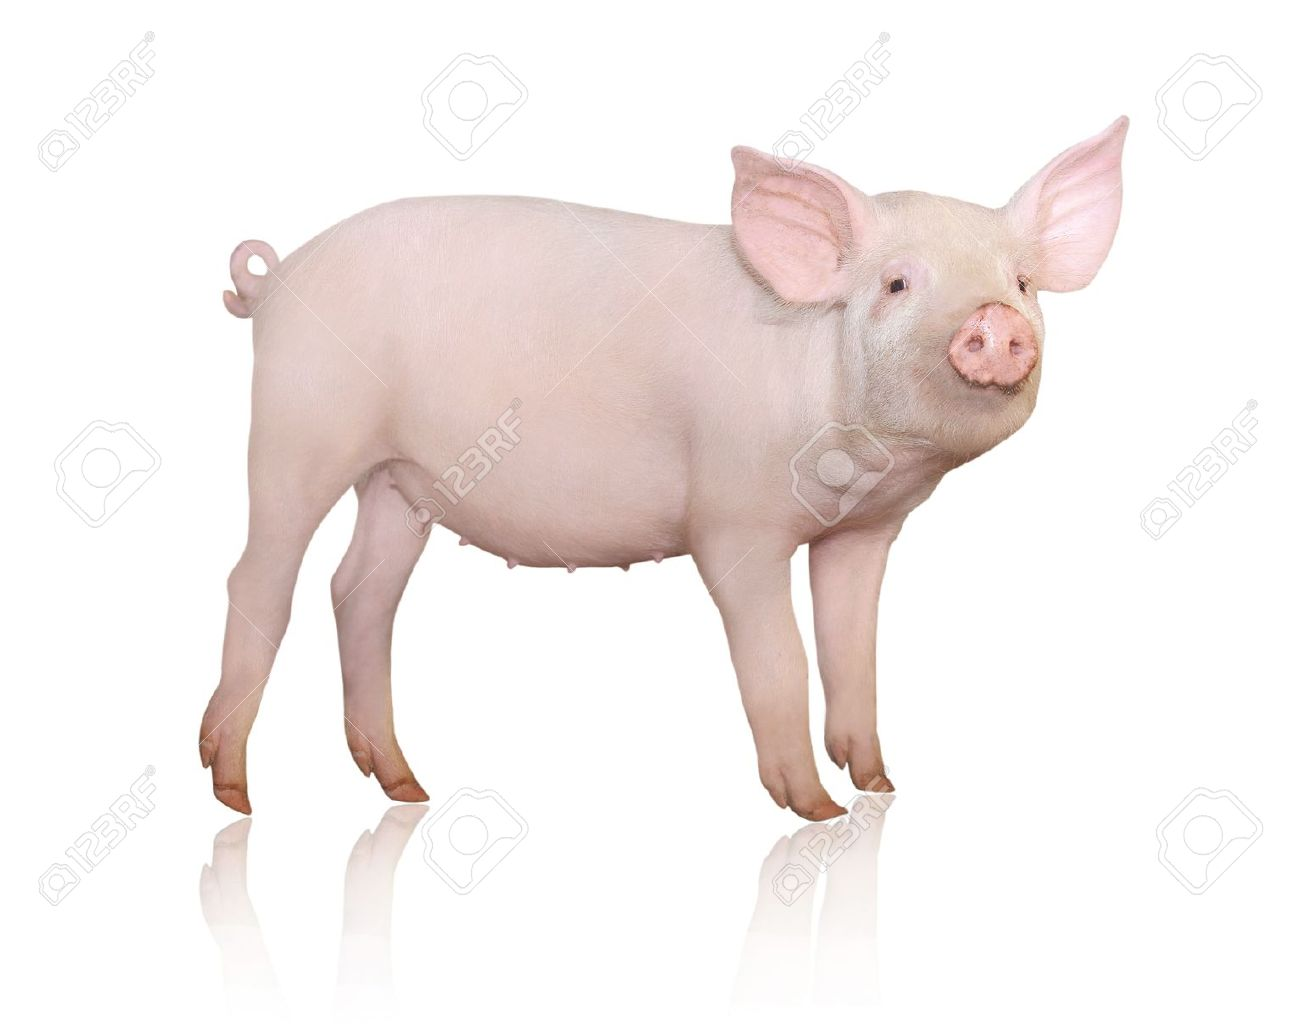 Pig who is represented on a white background Stock Photo - 14361331